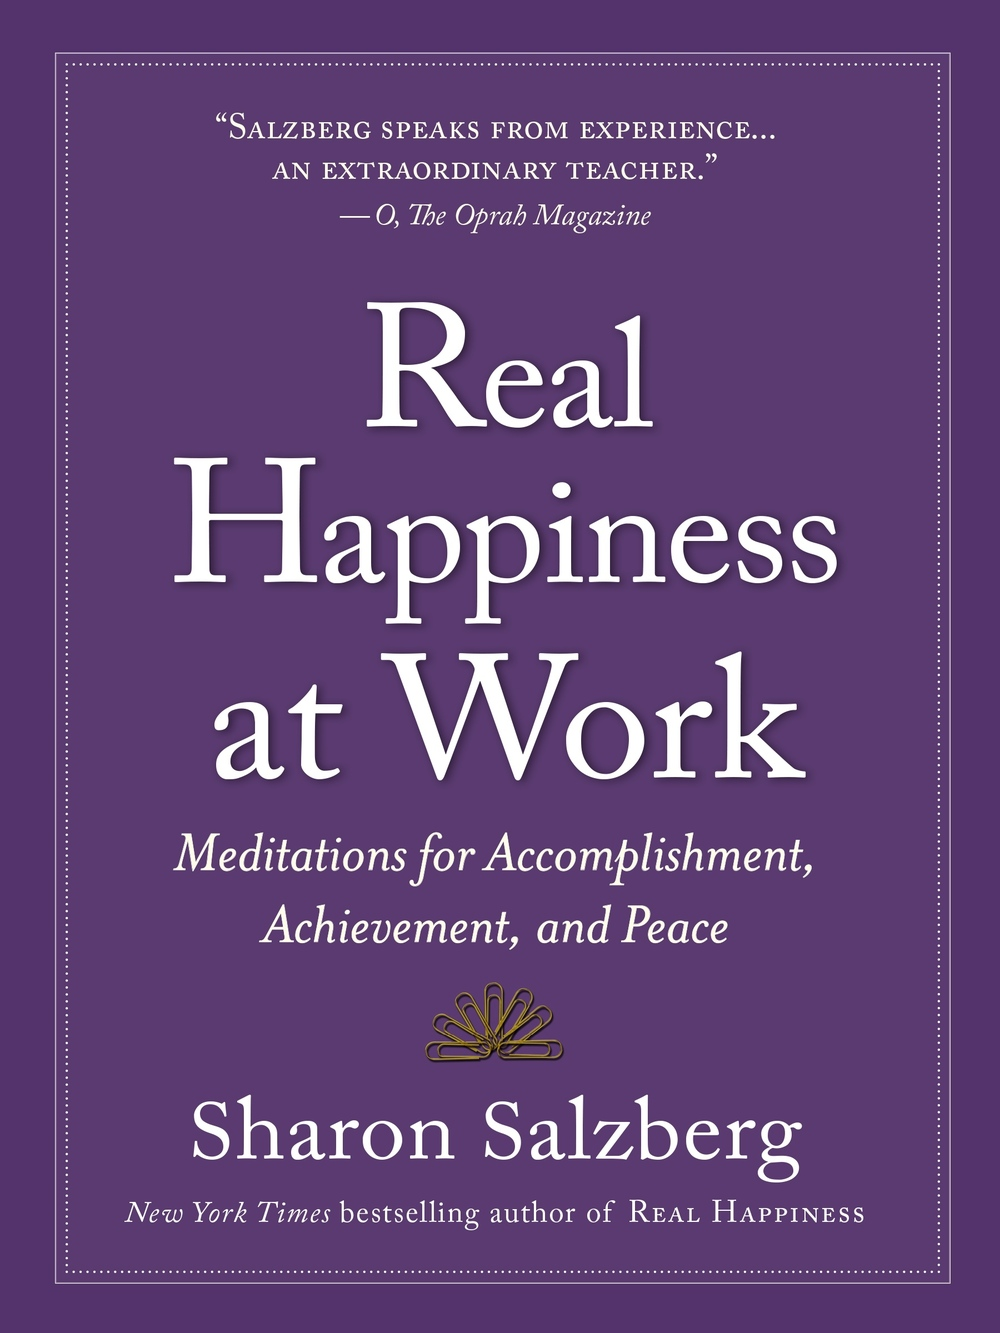 Real Happiness at Work Sharon Salzberg